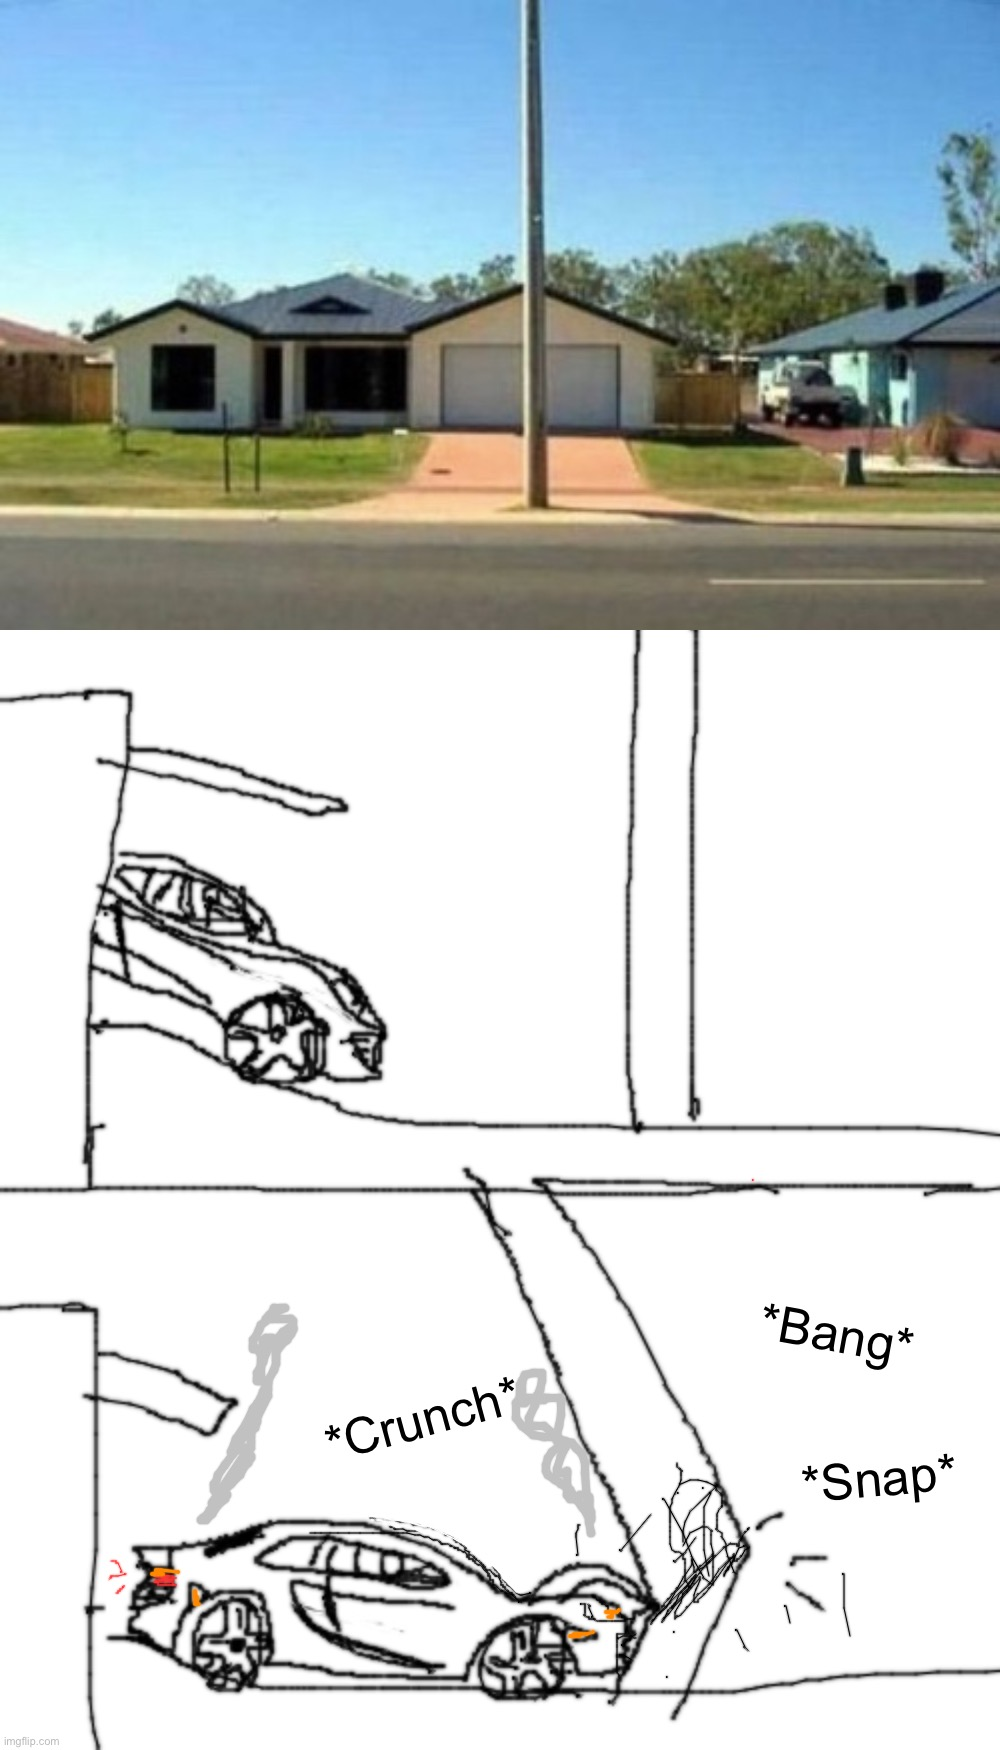 What is that doing over there? That's gonna smash my car! |  *Bang*; *Snap*; *Crunch* | image tagged in memes,blank transparent square,funny,funny memes,you had one job,car crash | made w/ Imgflip meme maker